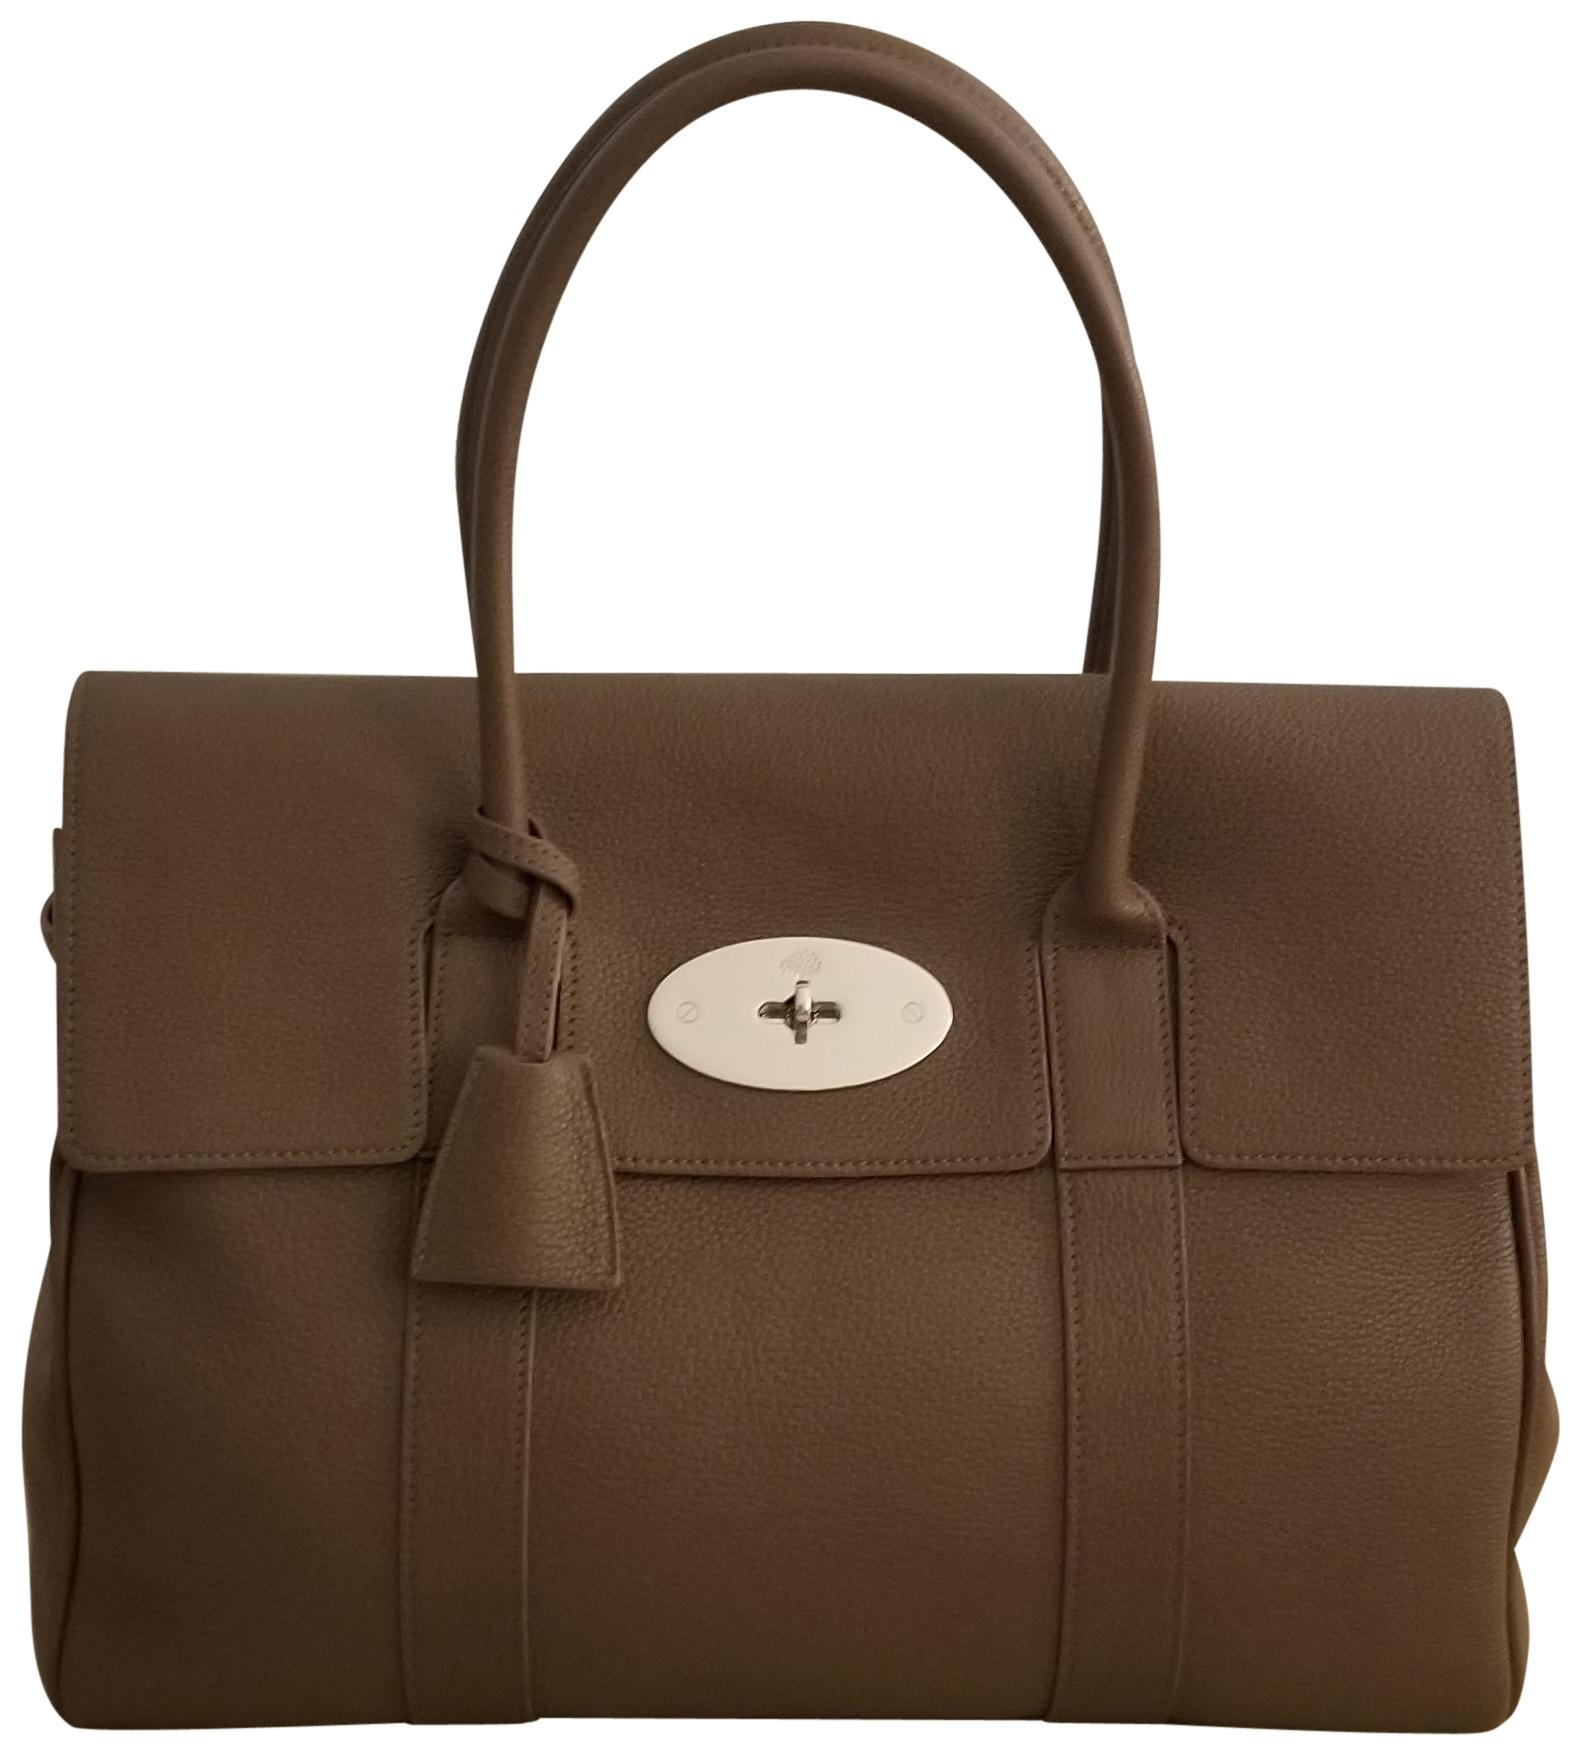 2e2cc59161 ... small classic grain leather satchel 7d112 c6bd6; 50% off added to  shopping bag. mulberry tote in taupe. mulberry heritage bayswater